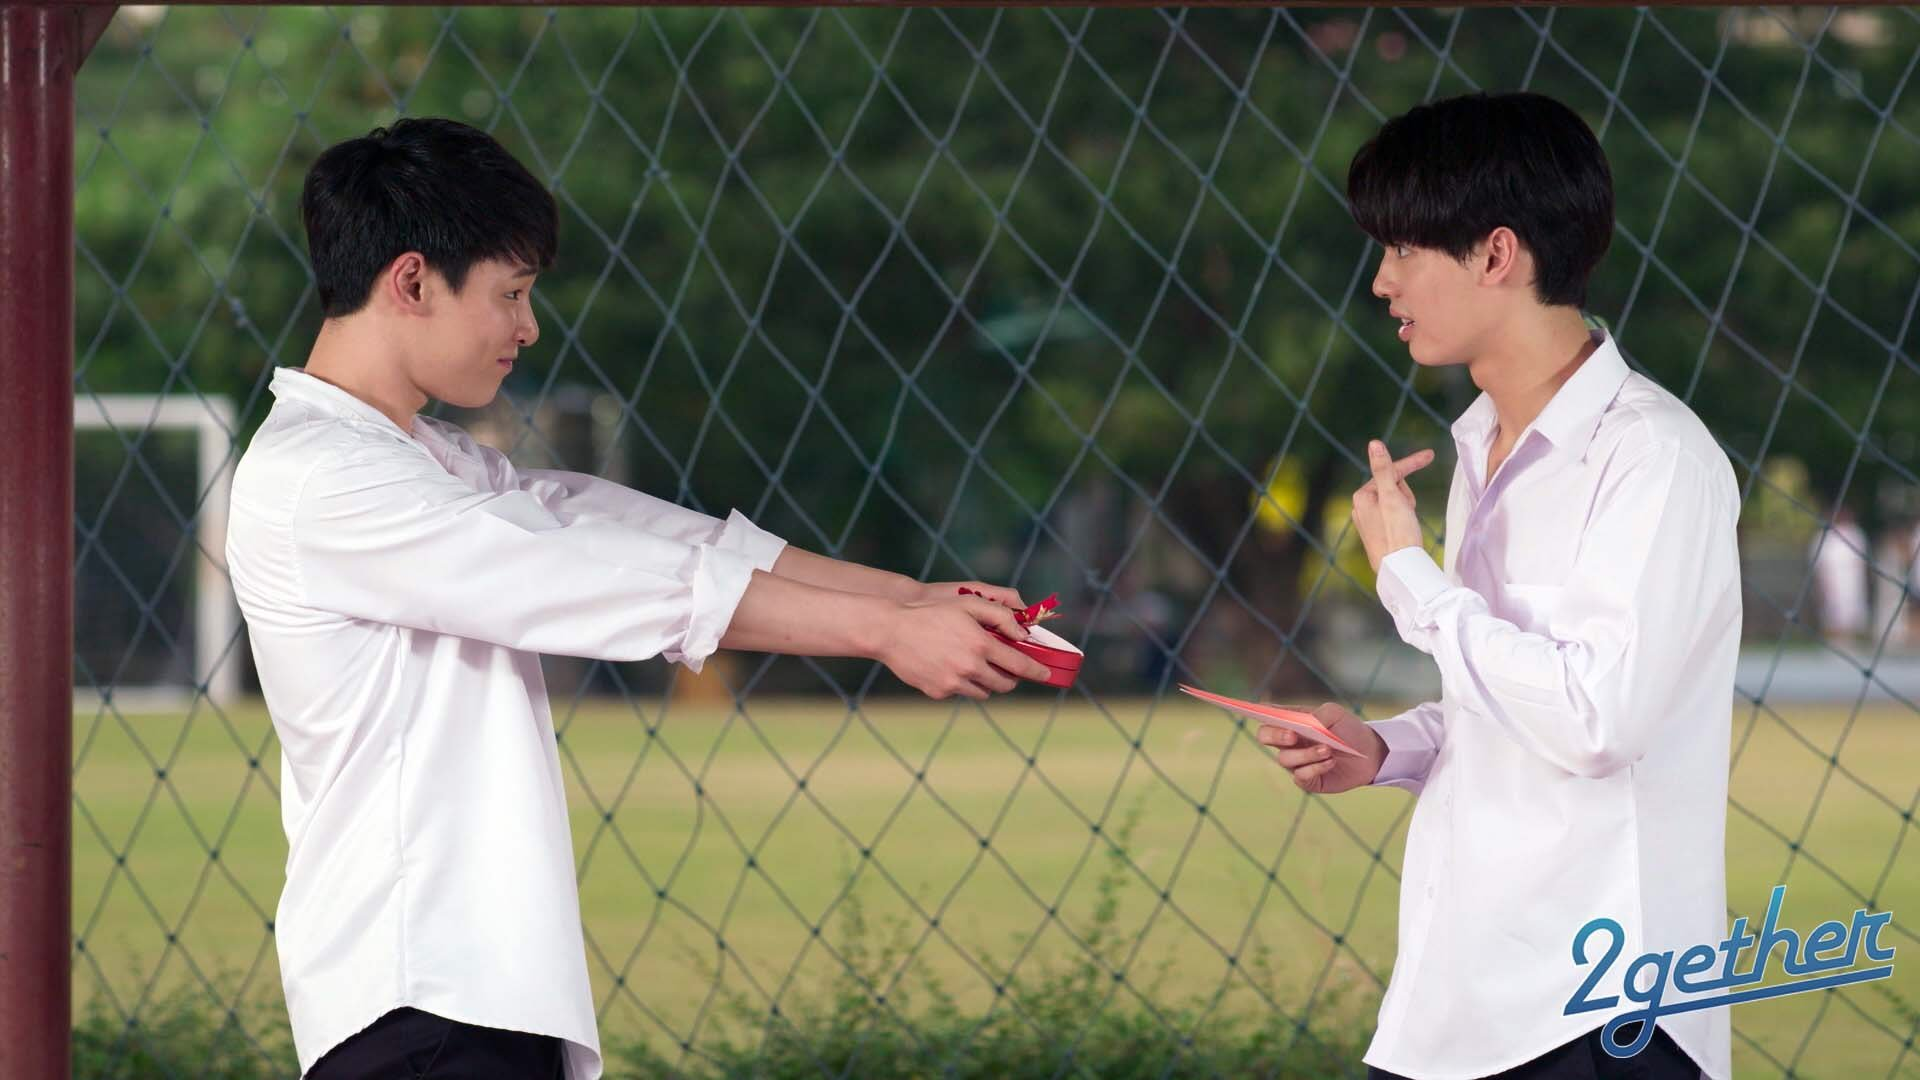 『2gether』提供:コンテンツセブン (c)GMMTV COMPANY LIMITED, All rights reserved